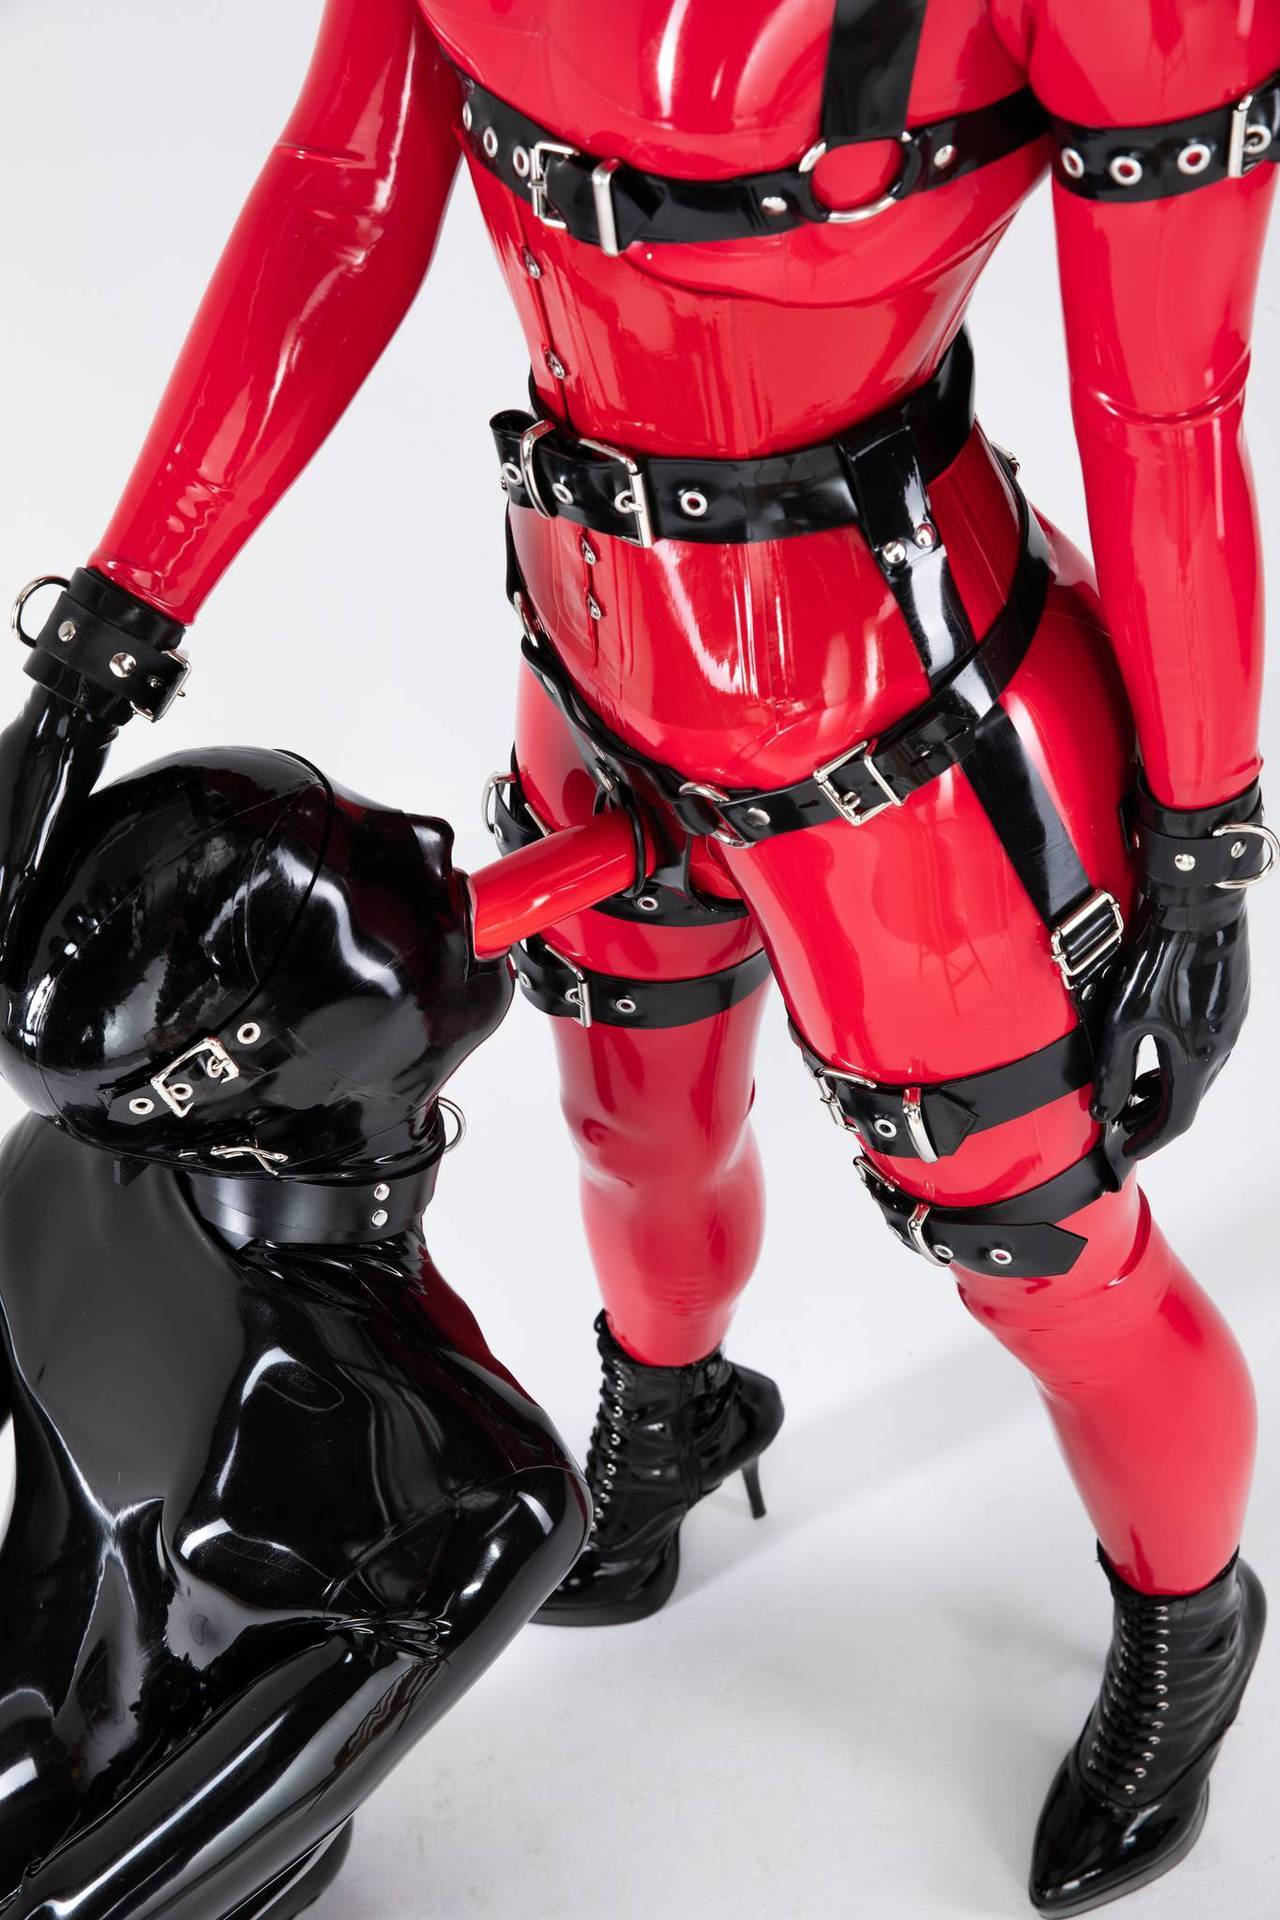 2018-11-08 19:40:40 - reflectivedesire black on red with cam twinksobeykinks http://www.neofic.com